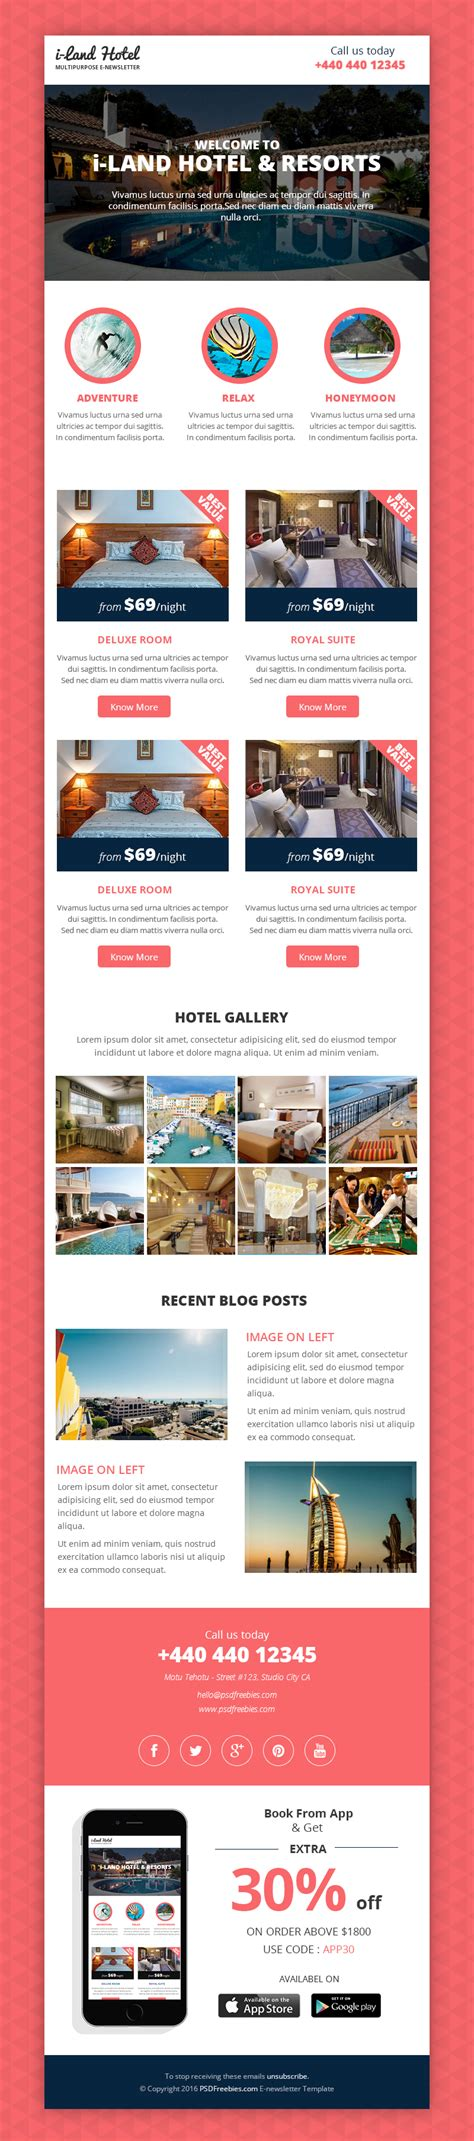 hotel newsletter layout hotel deals and offers newsletter template free psd